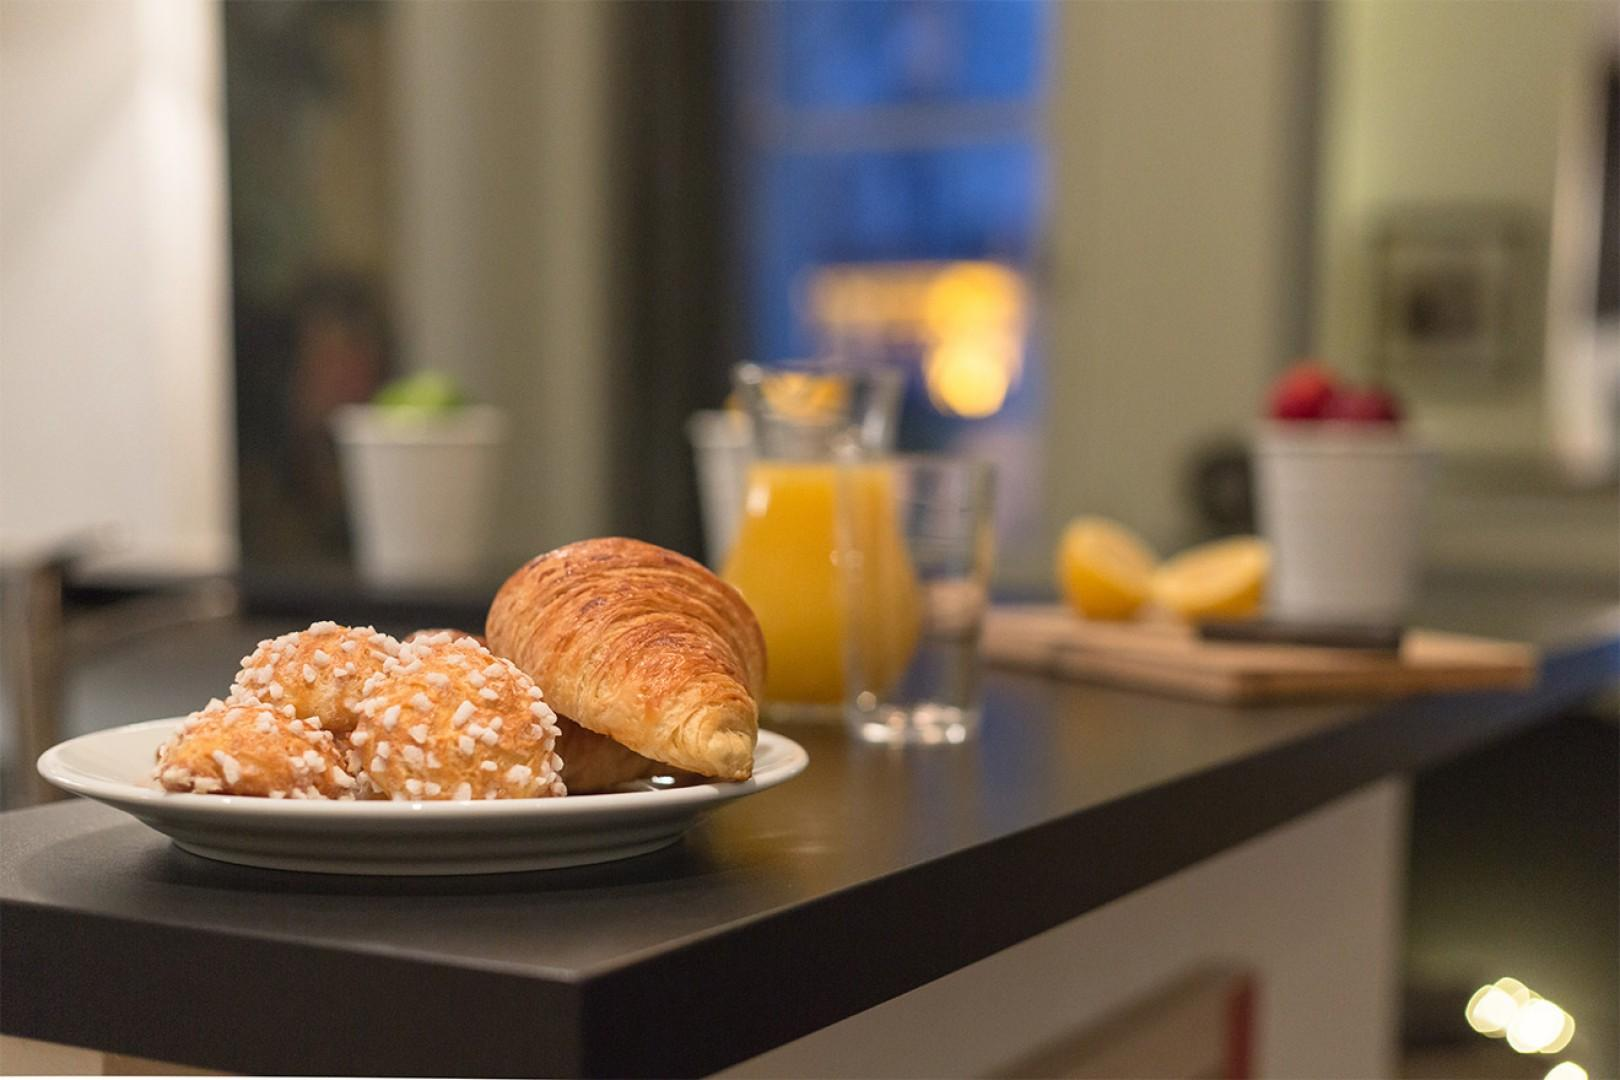 Pick up some fresh breakfast pastries from neighborhood bakeries.